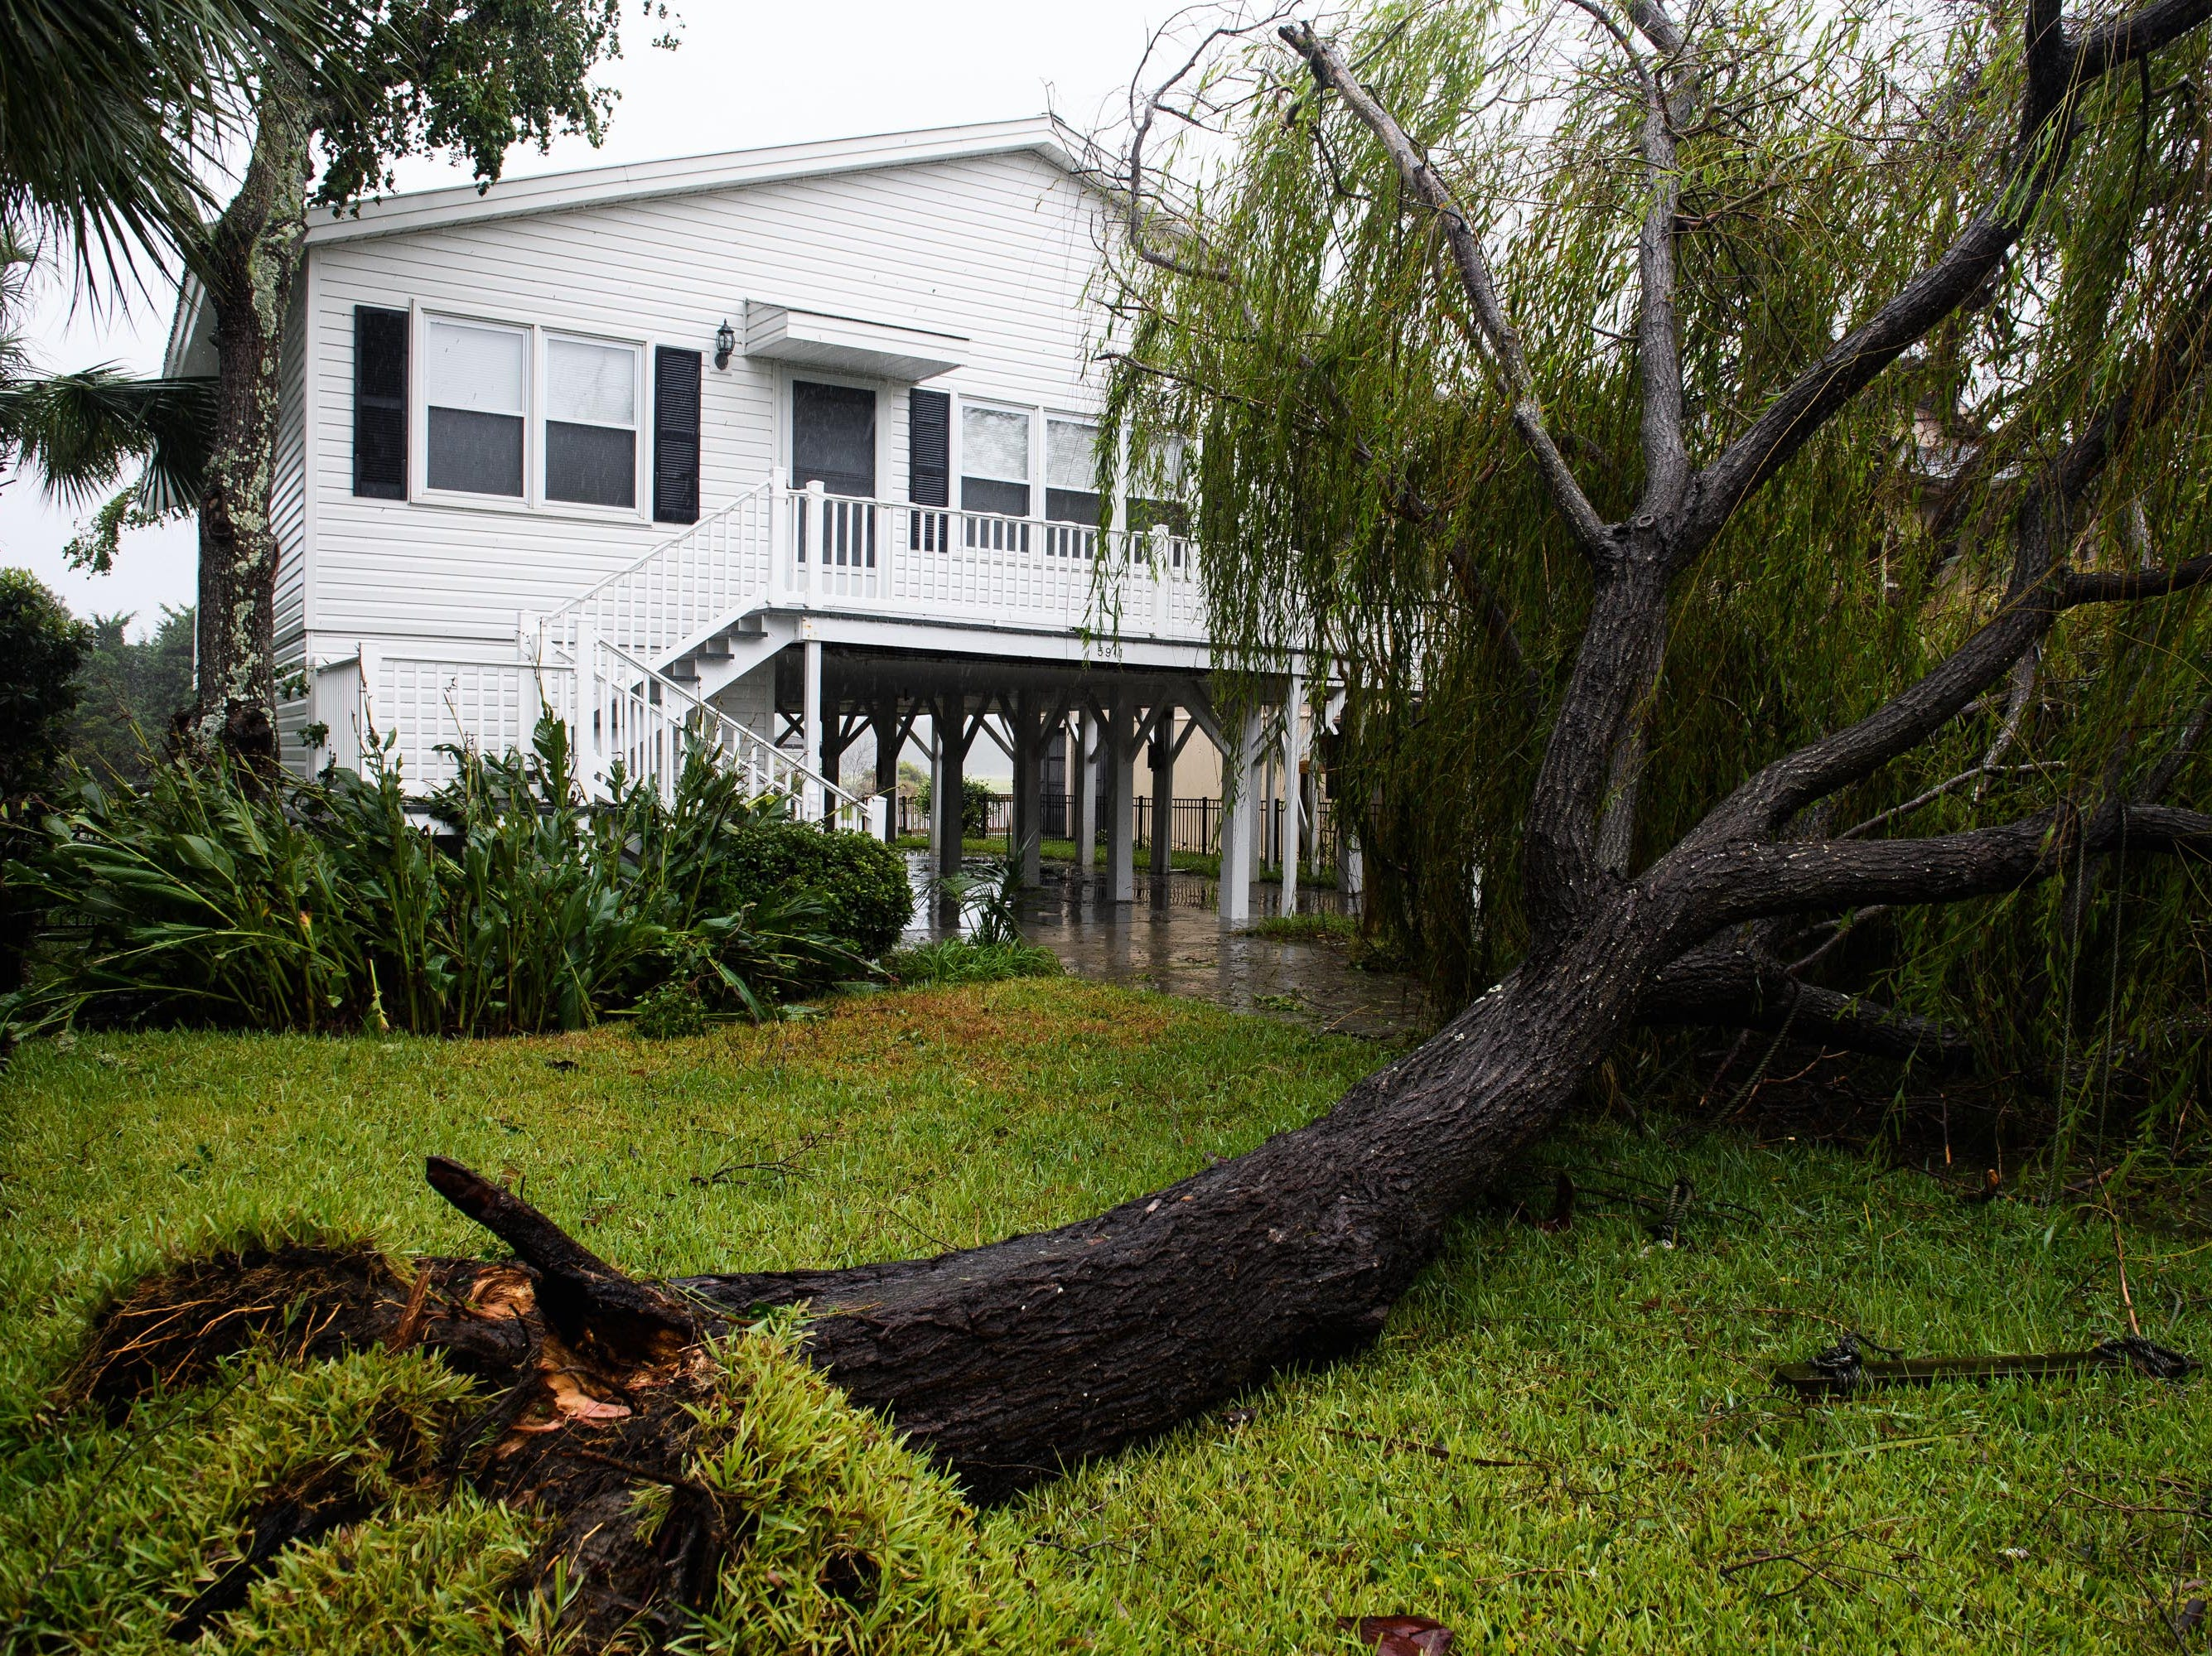 A downed tree sits in front of a home in North Myrtle Beach, S.C. on Saturday, Sept. 15, 2018.